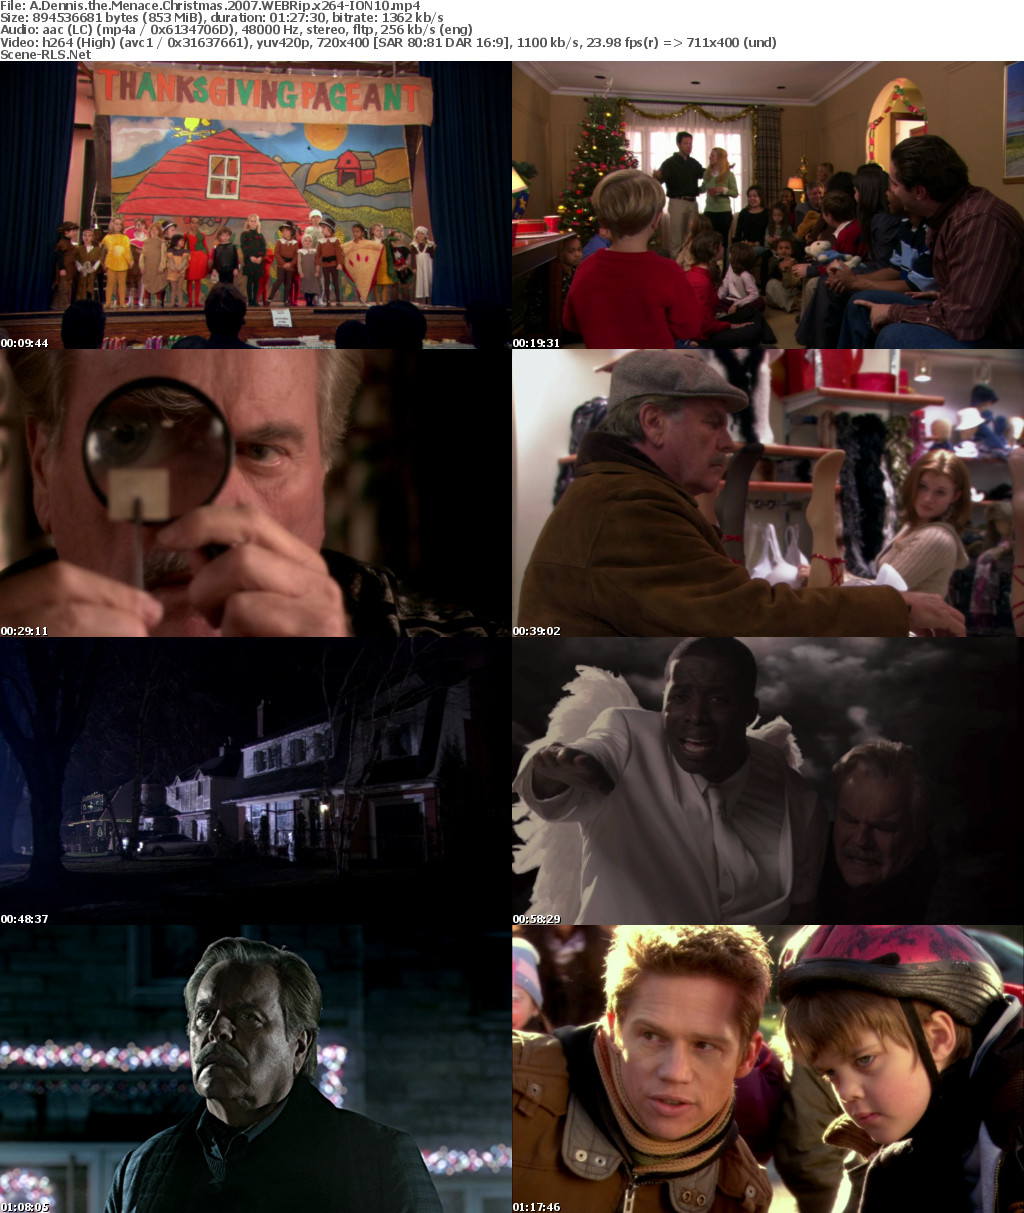 A Dennis The Menace Christmas.A Dennis The Menace Christmas 2007 Webrip X264 Ion10 Scene